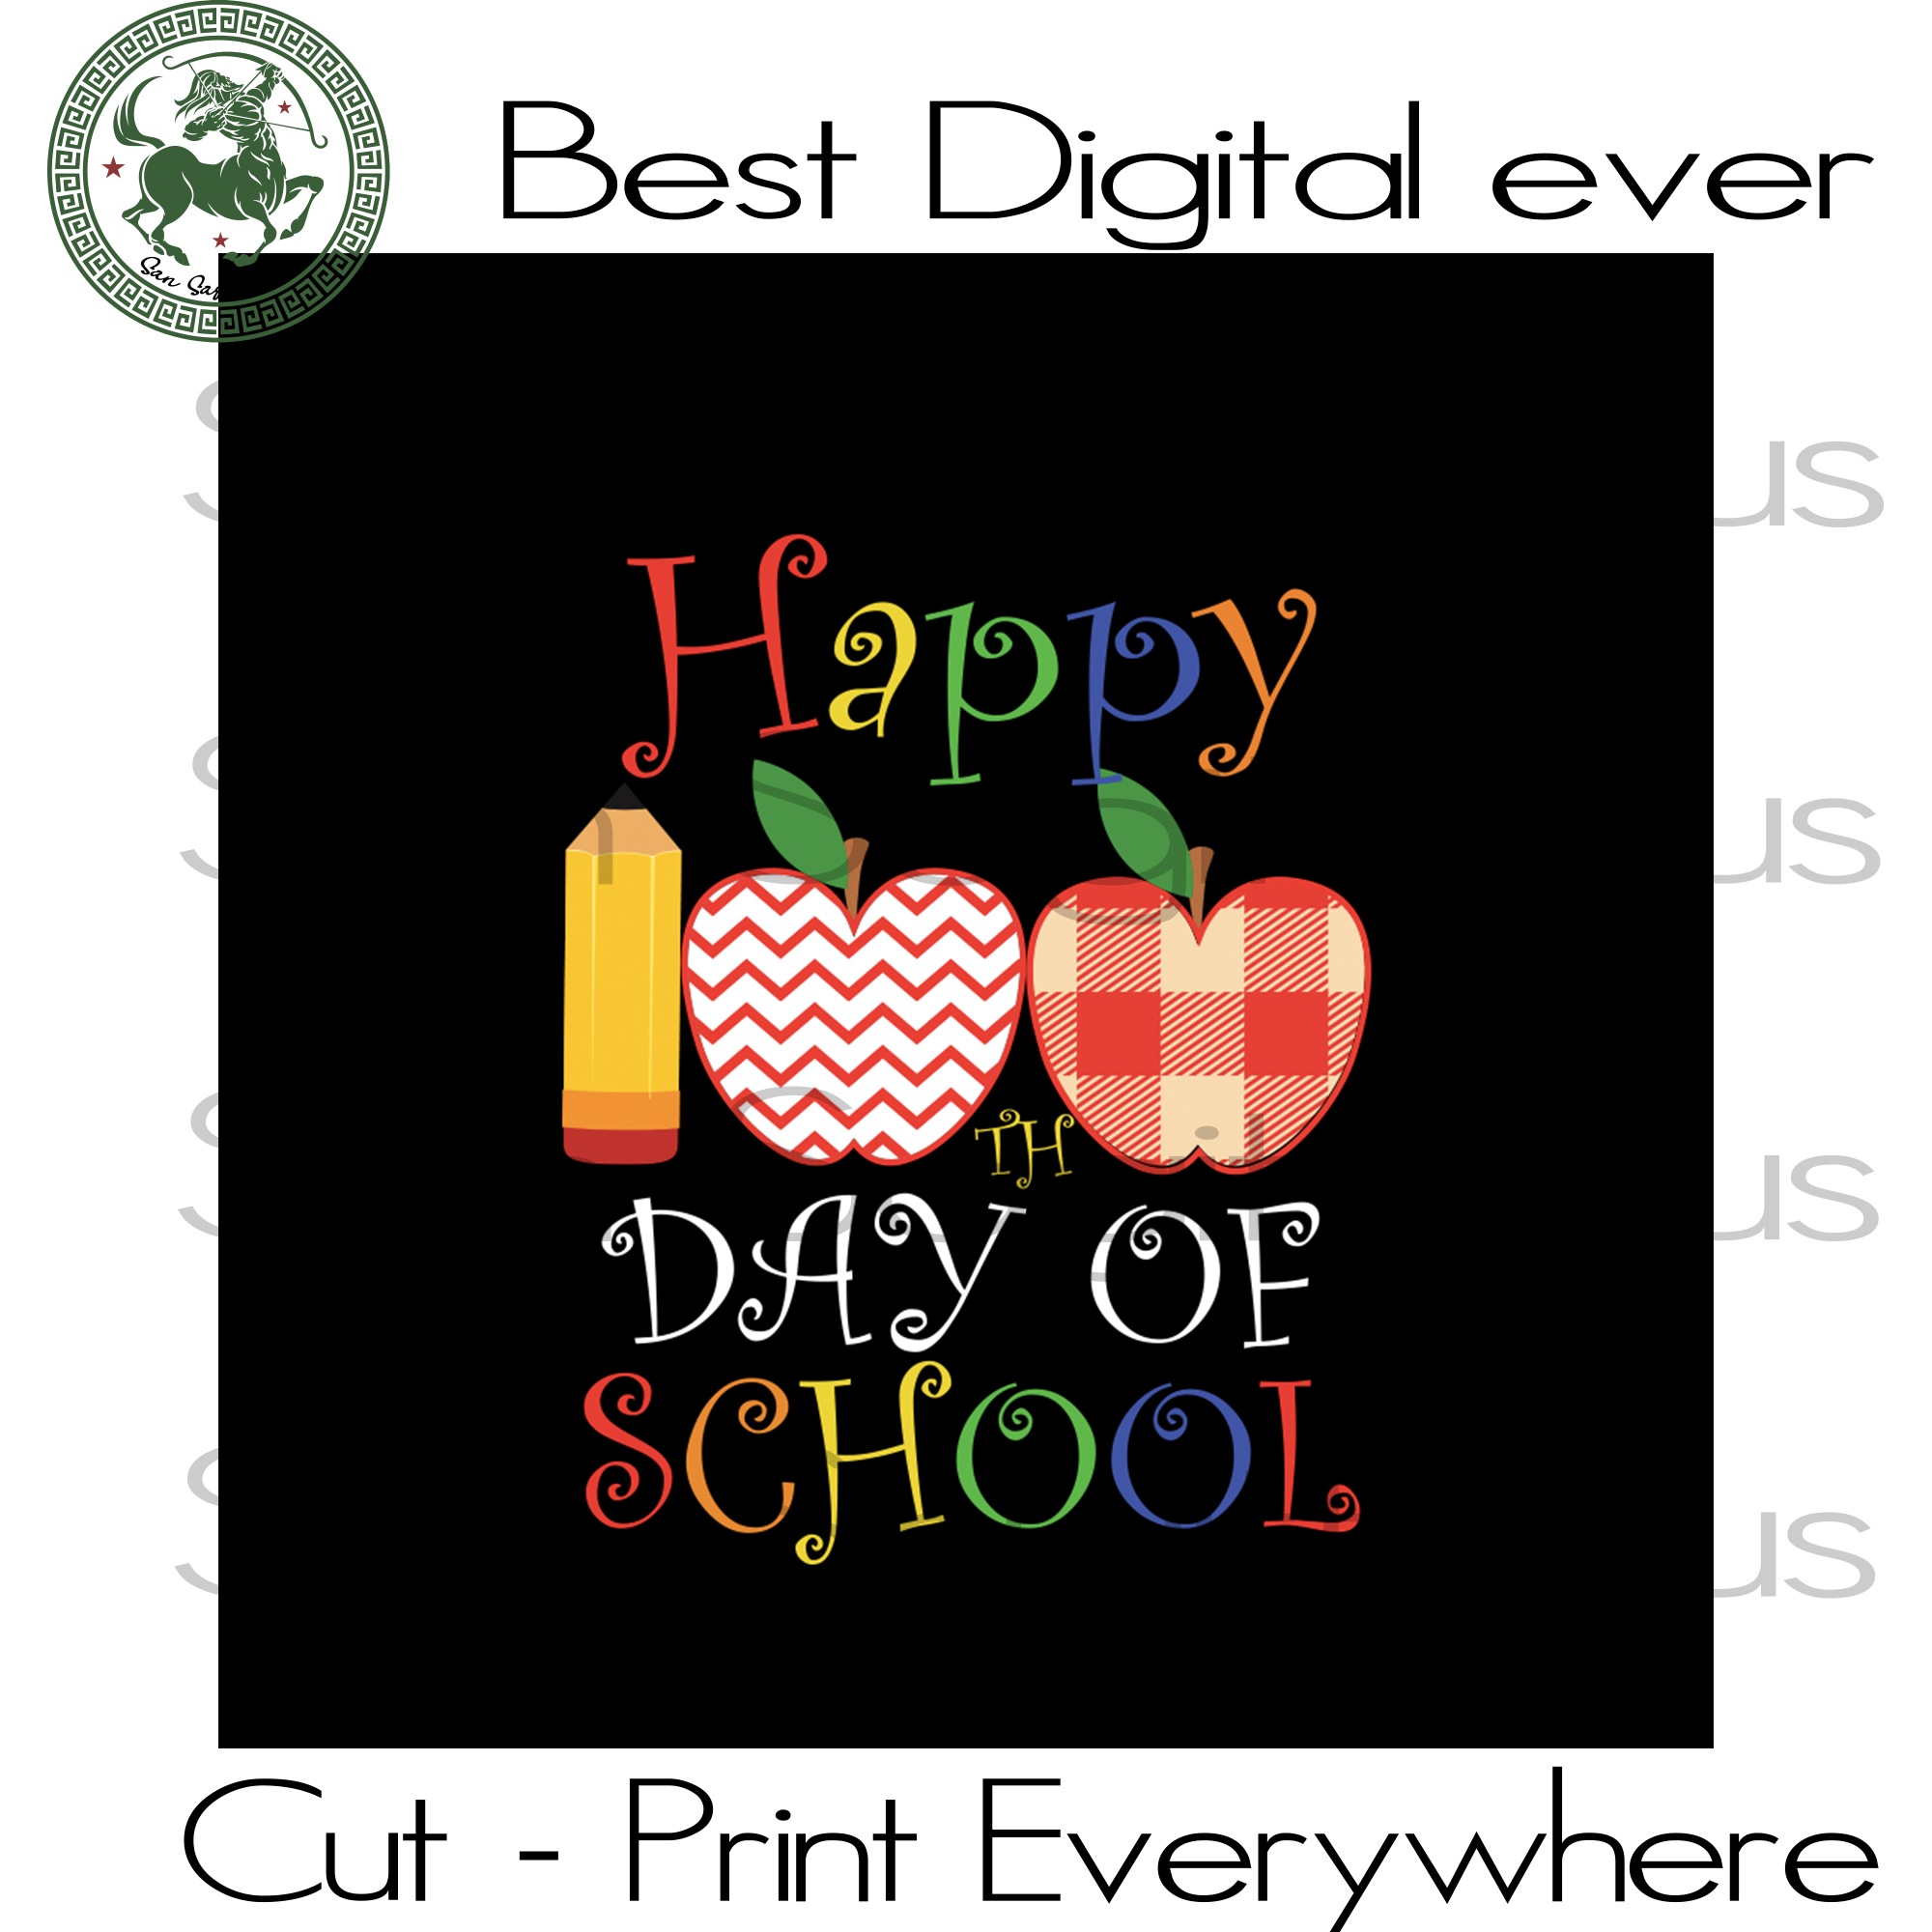 Happy 100th Days Of School Teachers Kids Kindergarten SVG Files For Cricut Silhouette Instant Download | San Sagittarius